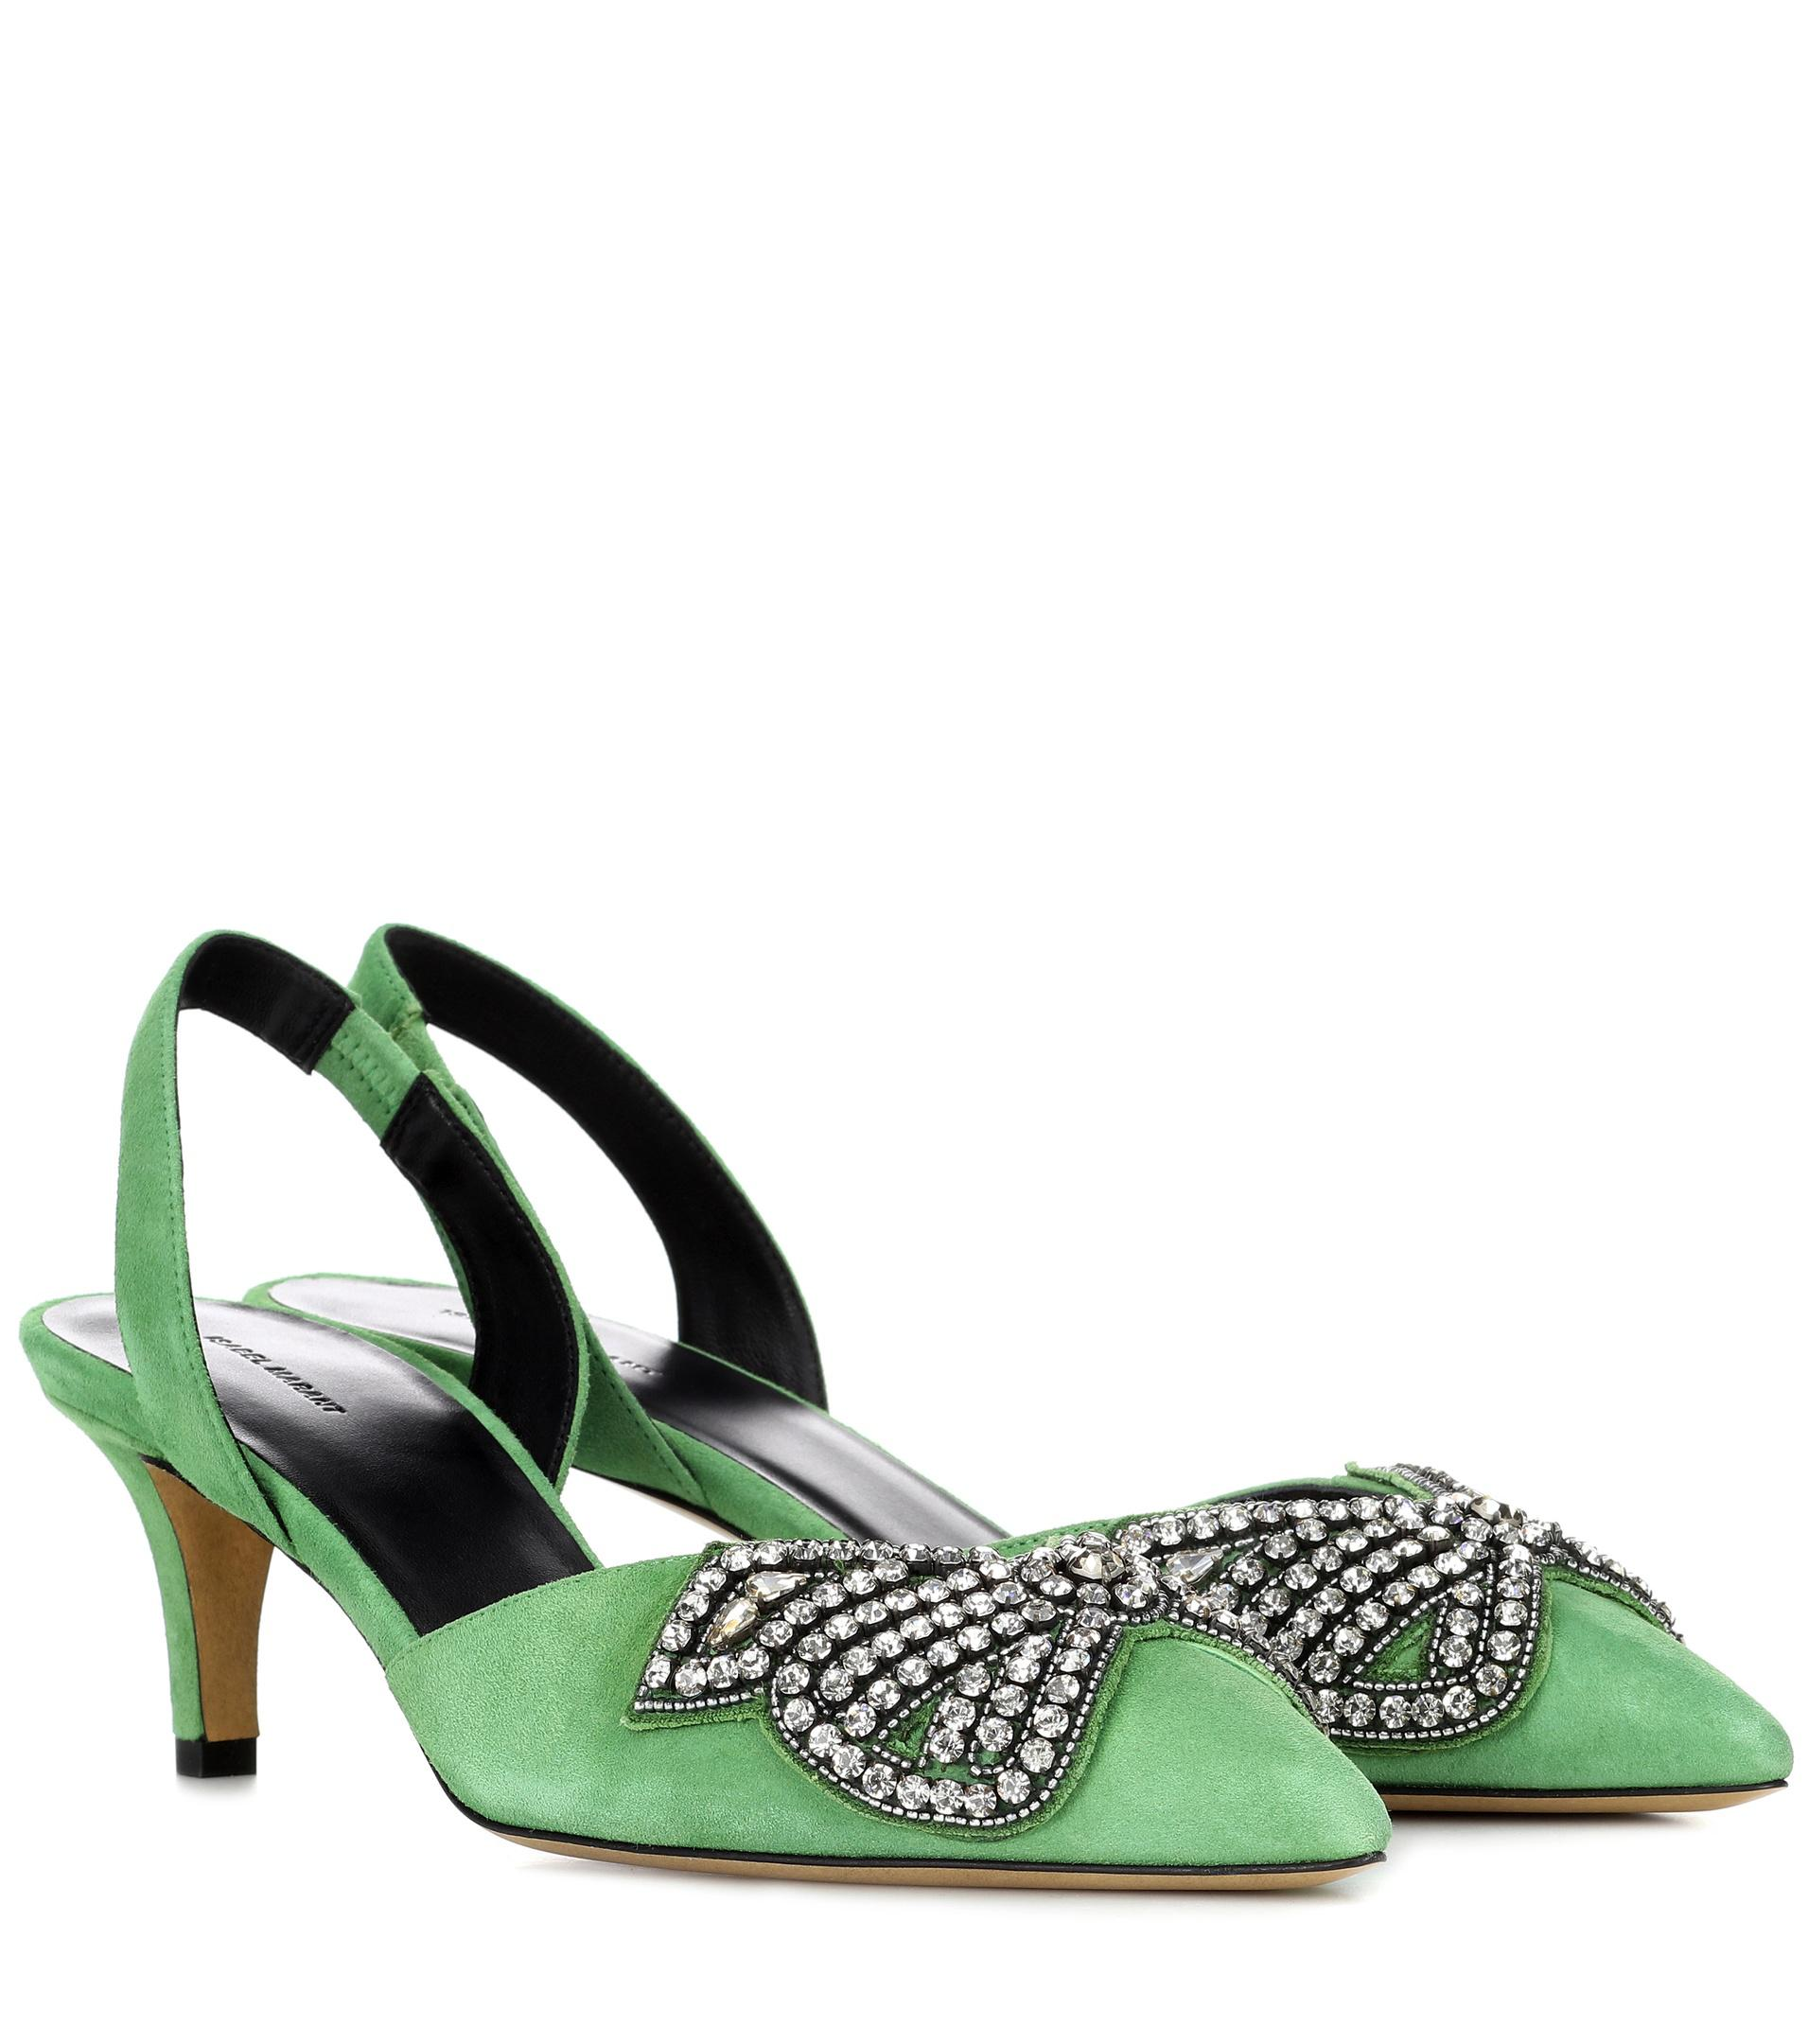 6a688598b45 Isabel Marant. Women s Green Pagda Suede Slingback Court Shoes